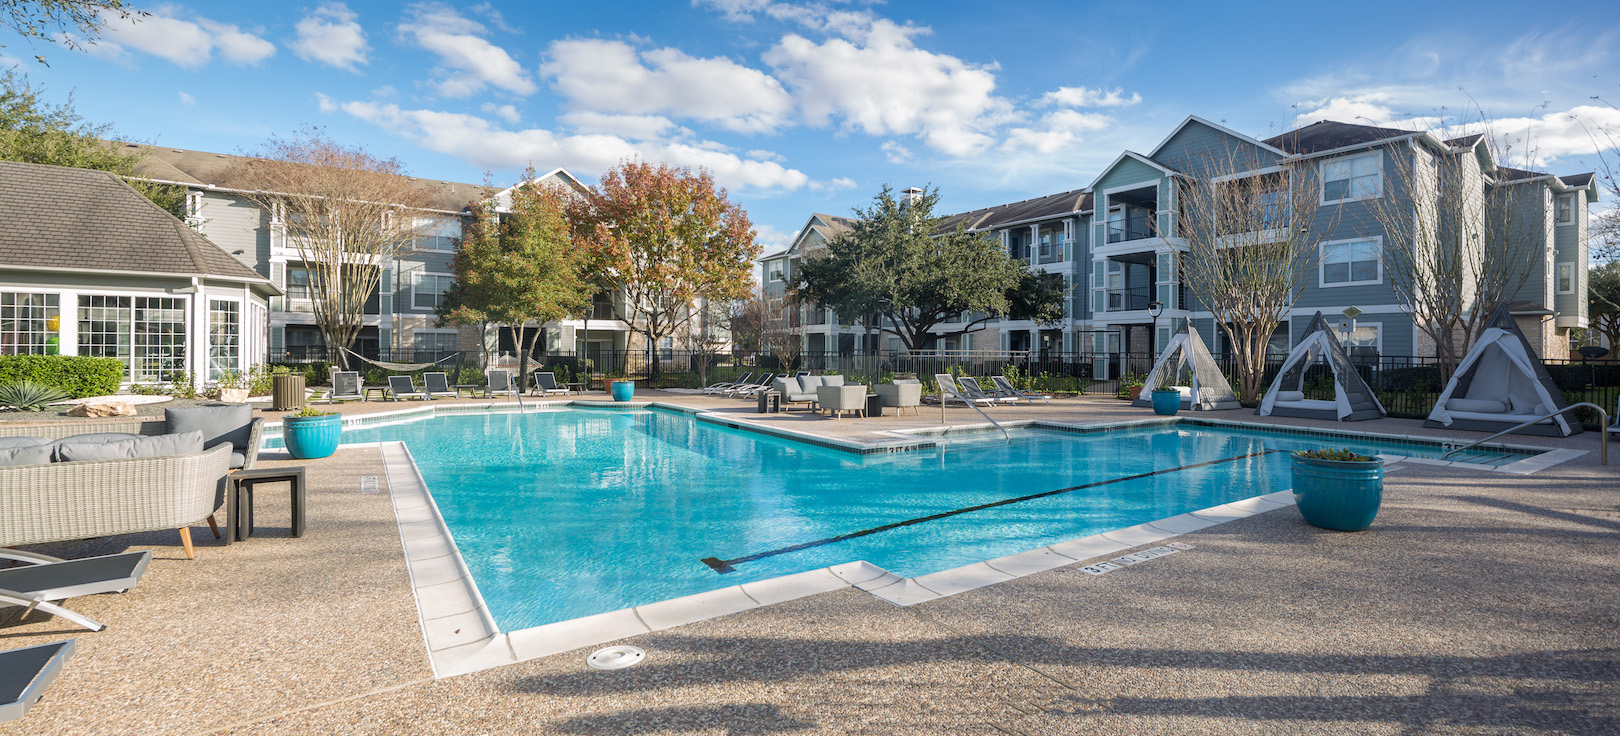 Sparkling Swimming Pool at The Link, a Community of Luxury Apartments in Houston, Texas